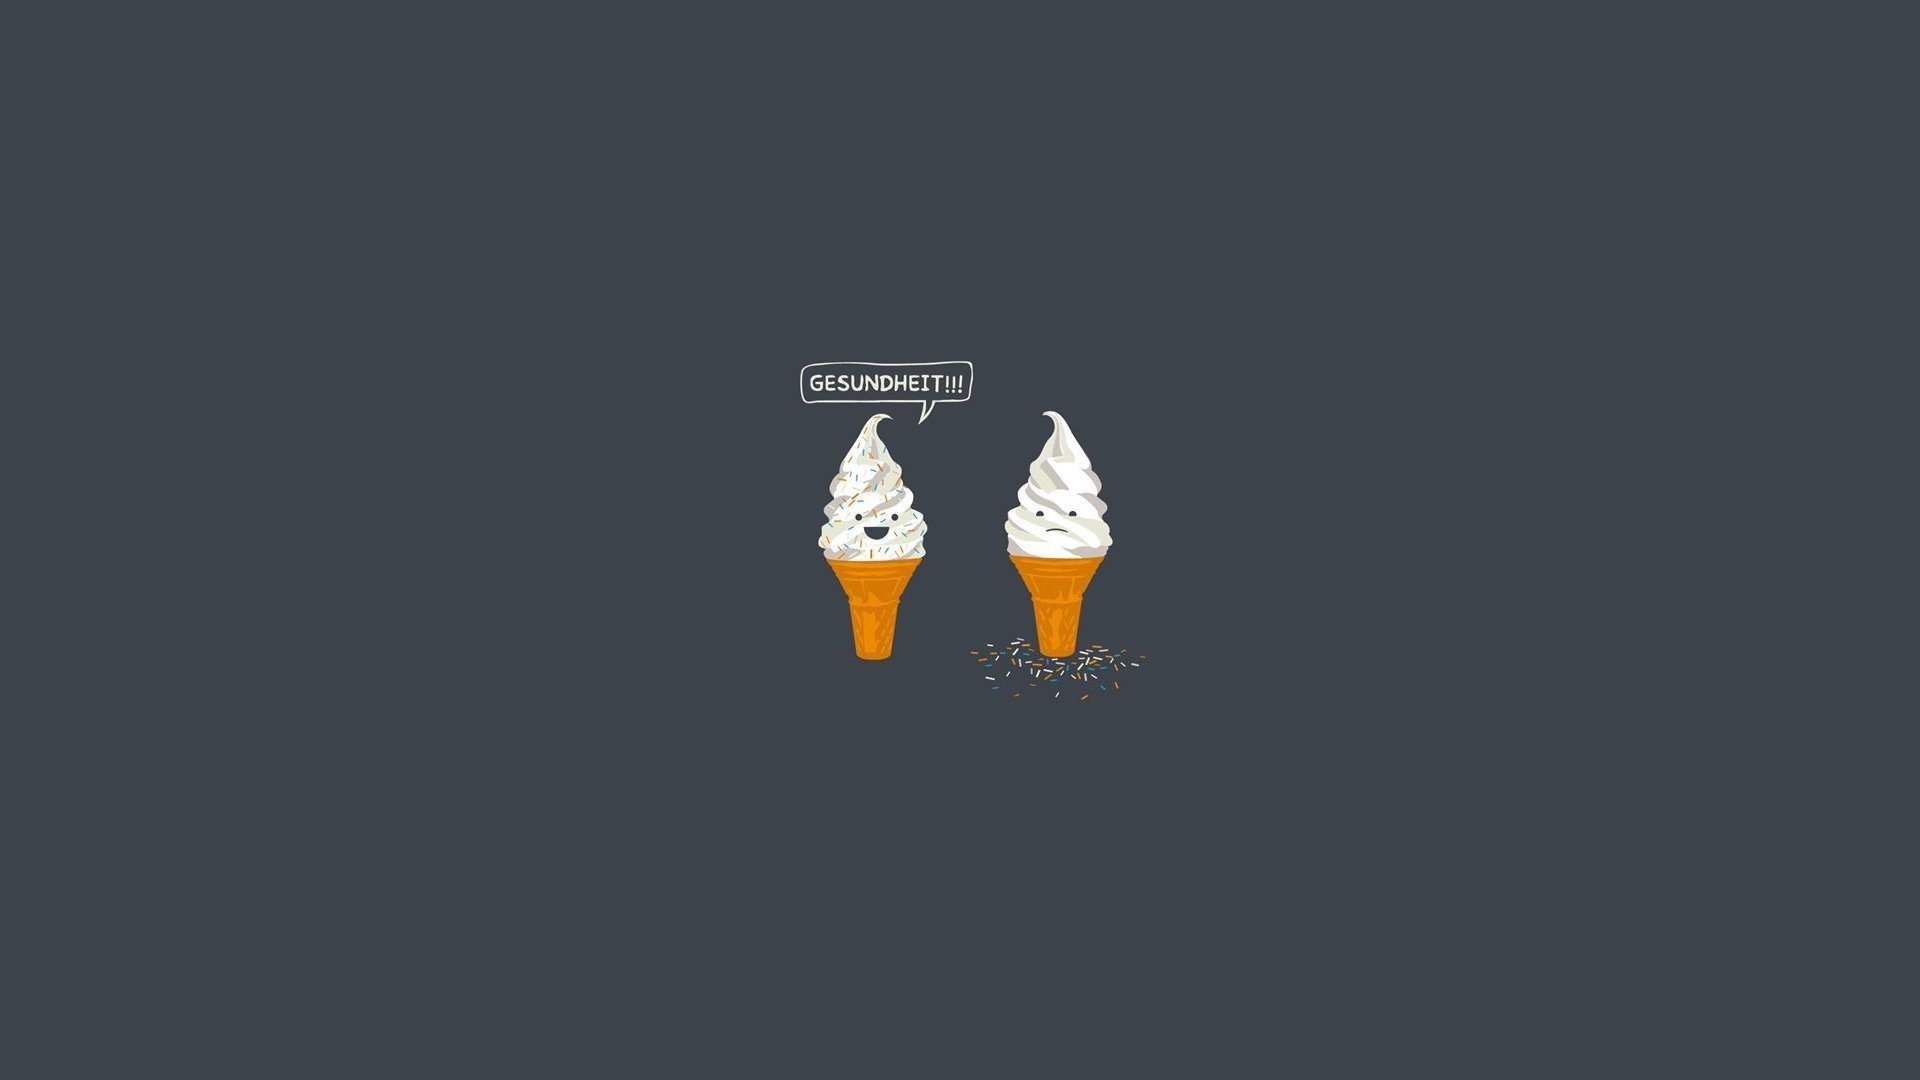 X Best Funny Inspirational Desktop Wallpapers Quotes Hd Cute Computer Wallpapers Collection   C B Download  C B X